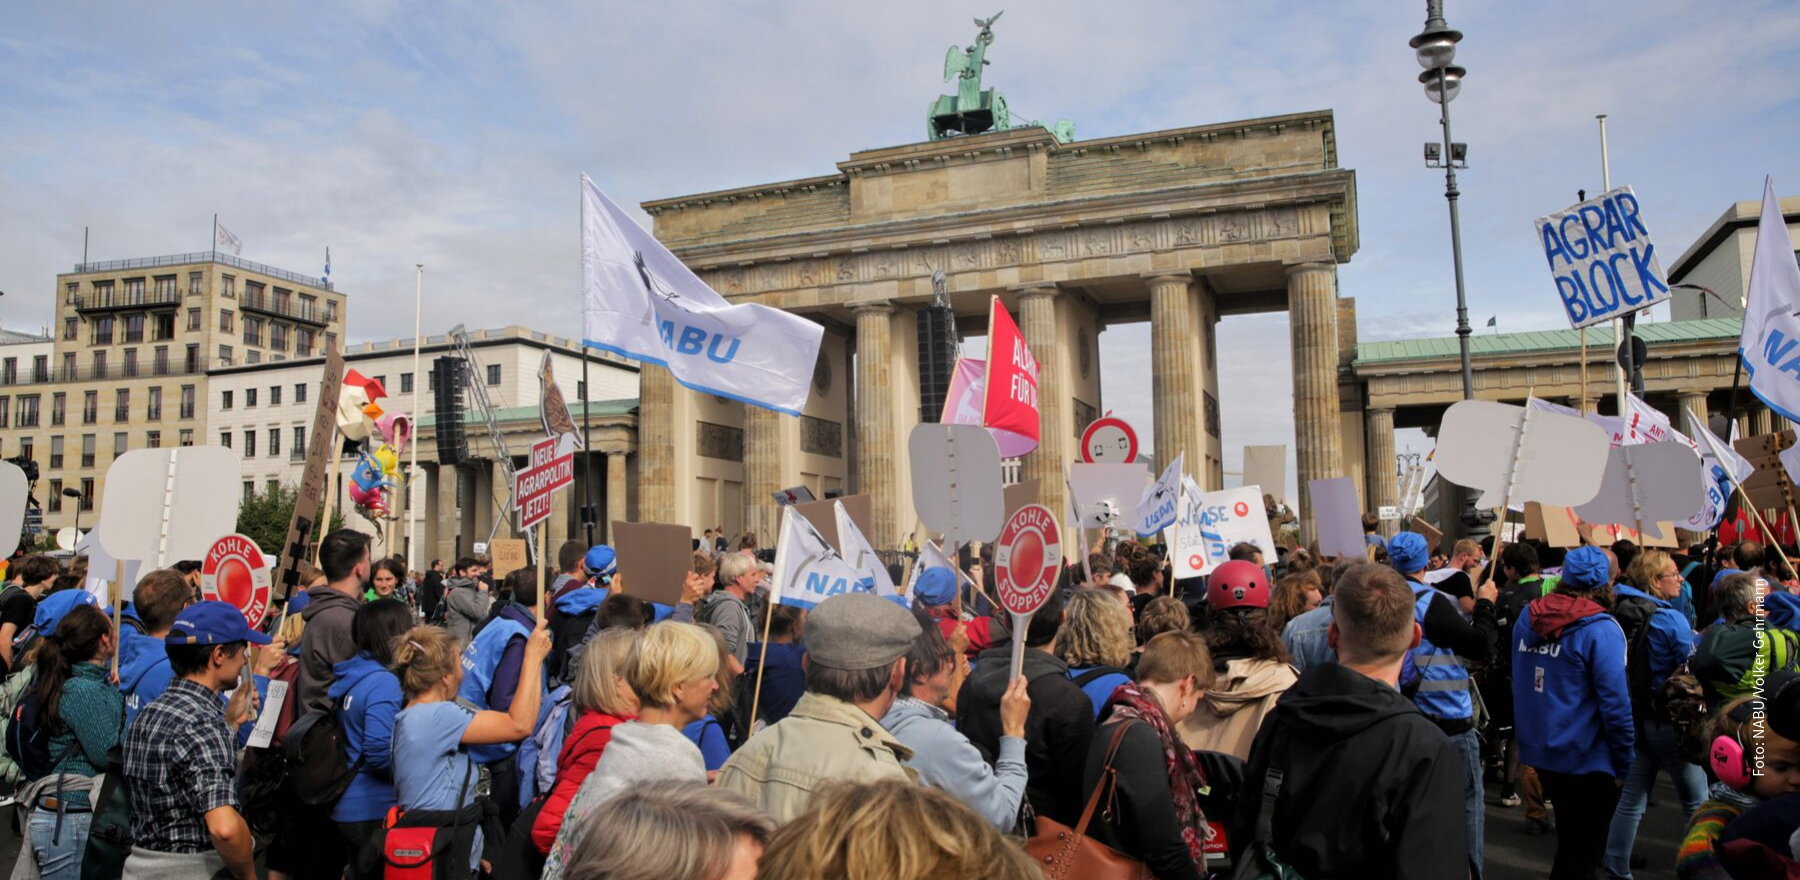 Klimastreik am Brandenburger Tor